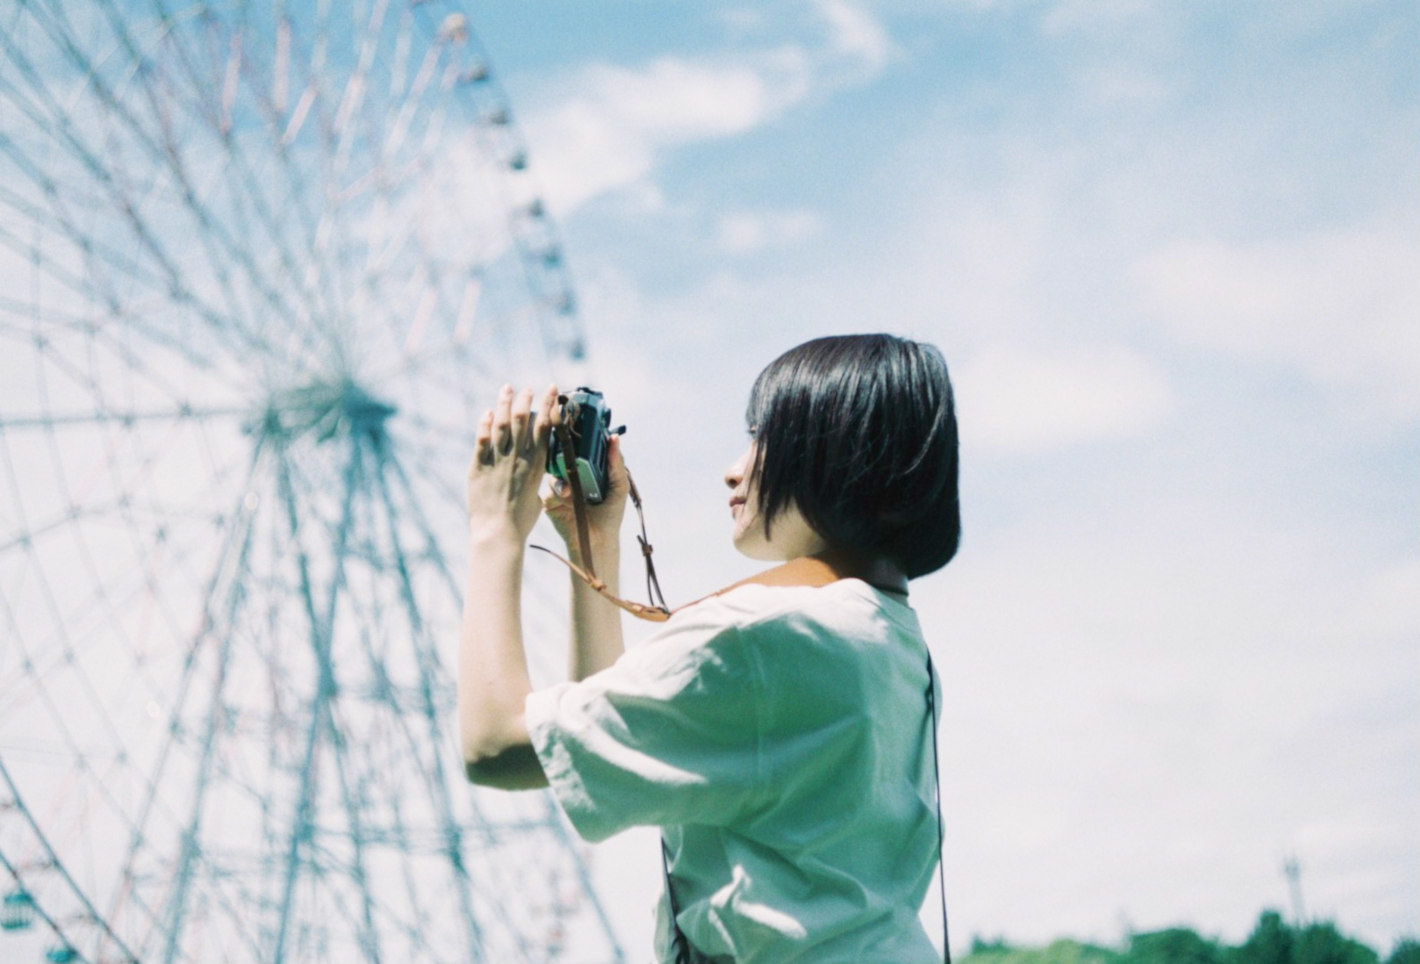 FE2、Nikkor S Auto 5cm F2 / photo by nano